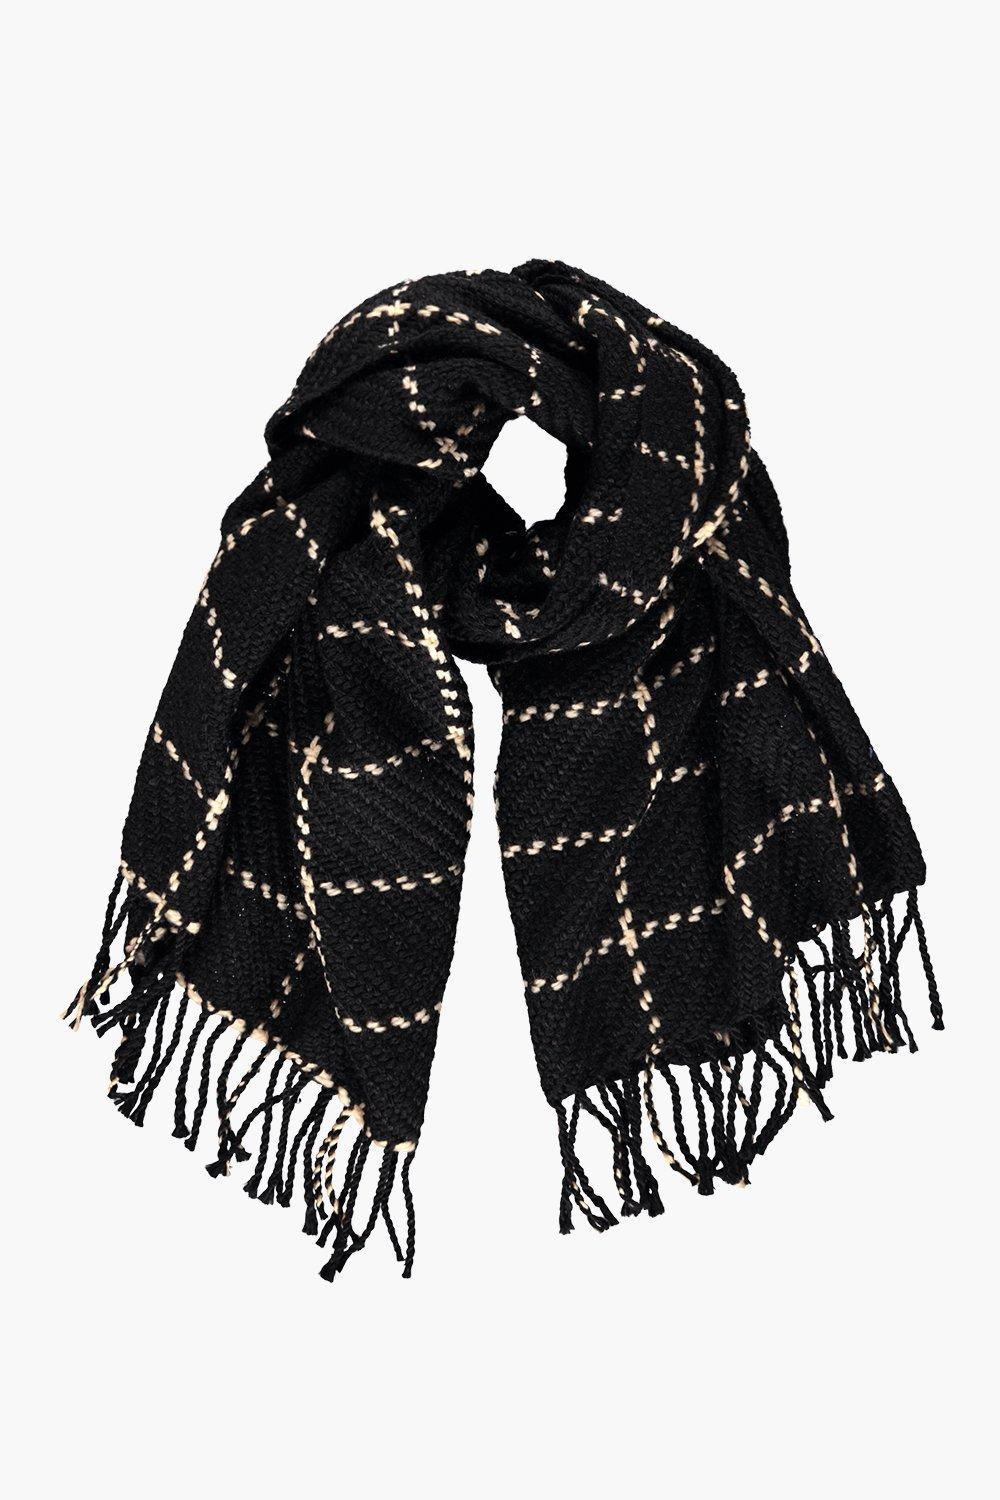 Checked Large Wrap Scarf Black - secondary colour: ivory/cream; predominant colour: black; occasions: casual, creative work; type of pattern: standard; style: regular; size: large; material: knits; embellishment: fringing; pattern: checked/gingham; season: a/w 2016; wardrobe: highlight